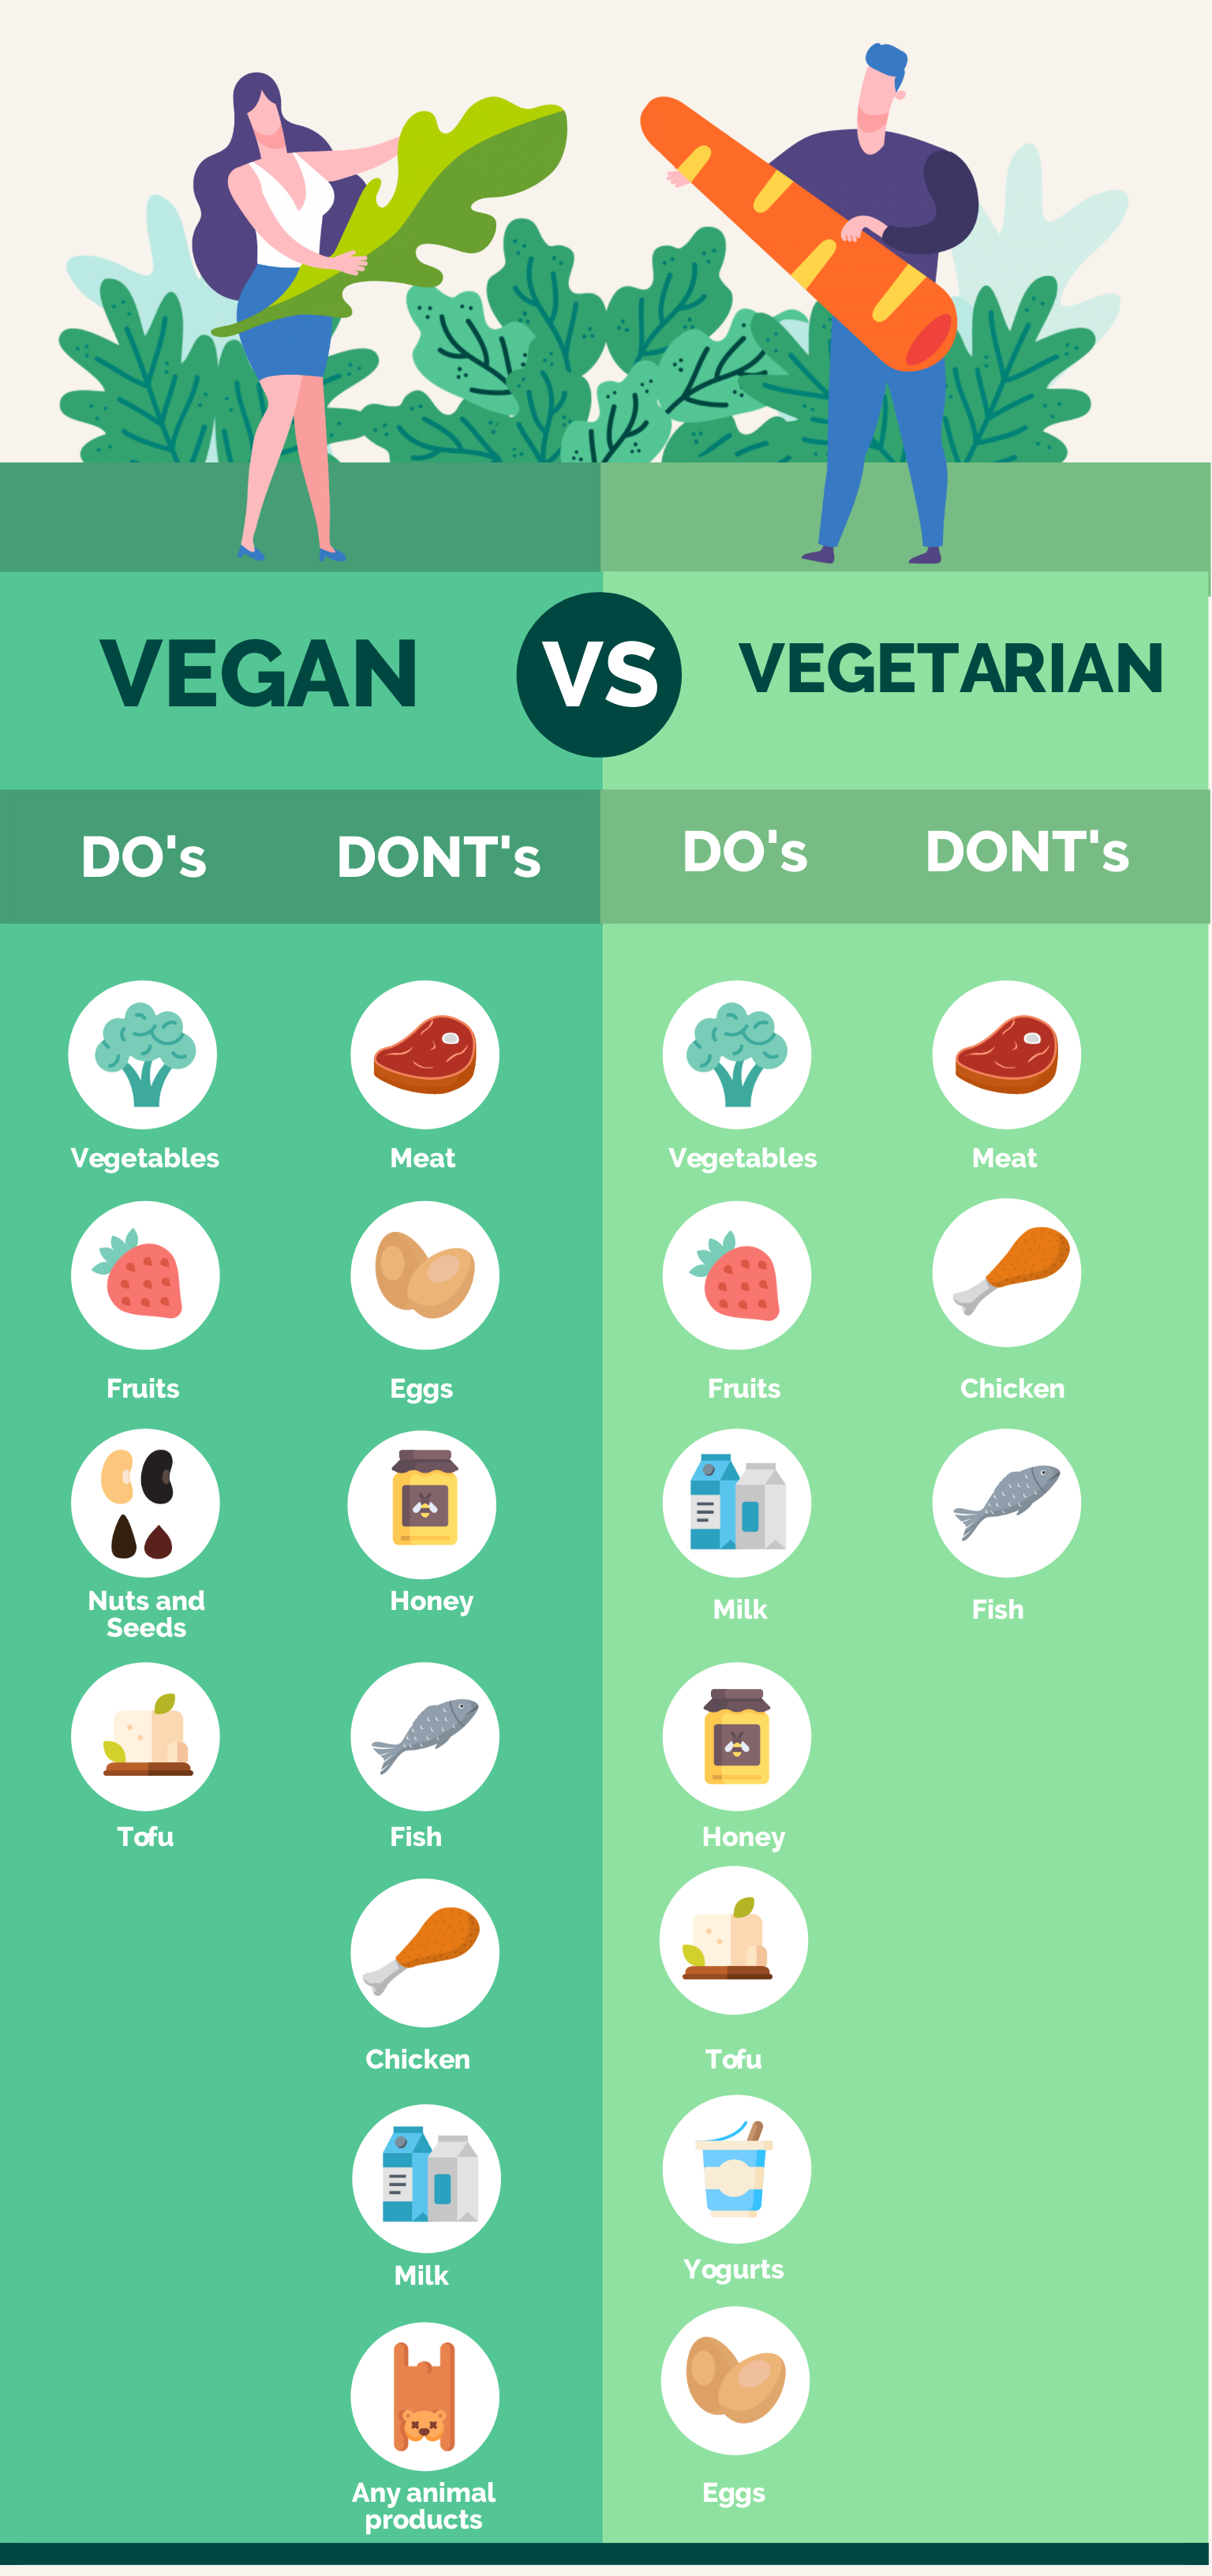 Vegan vs vegetarian infographic